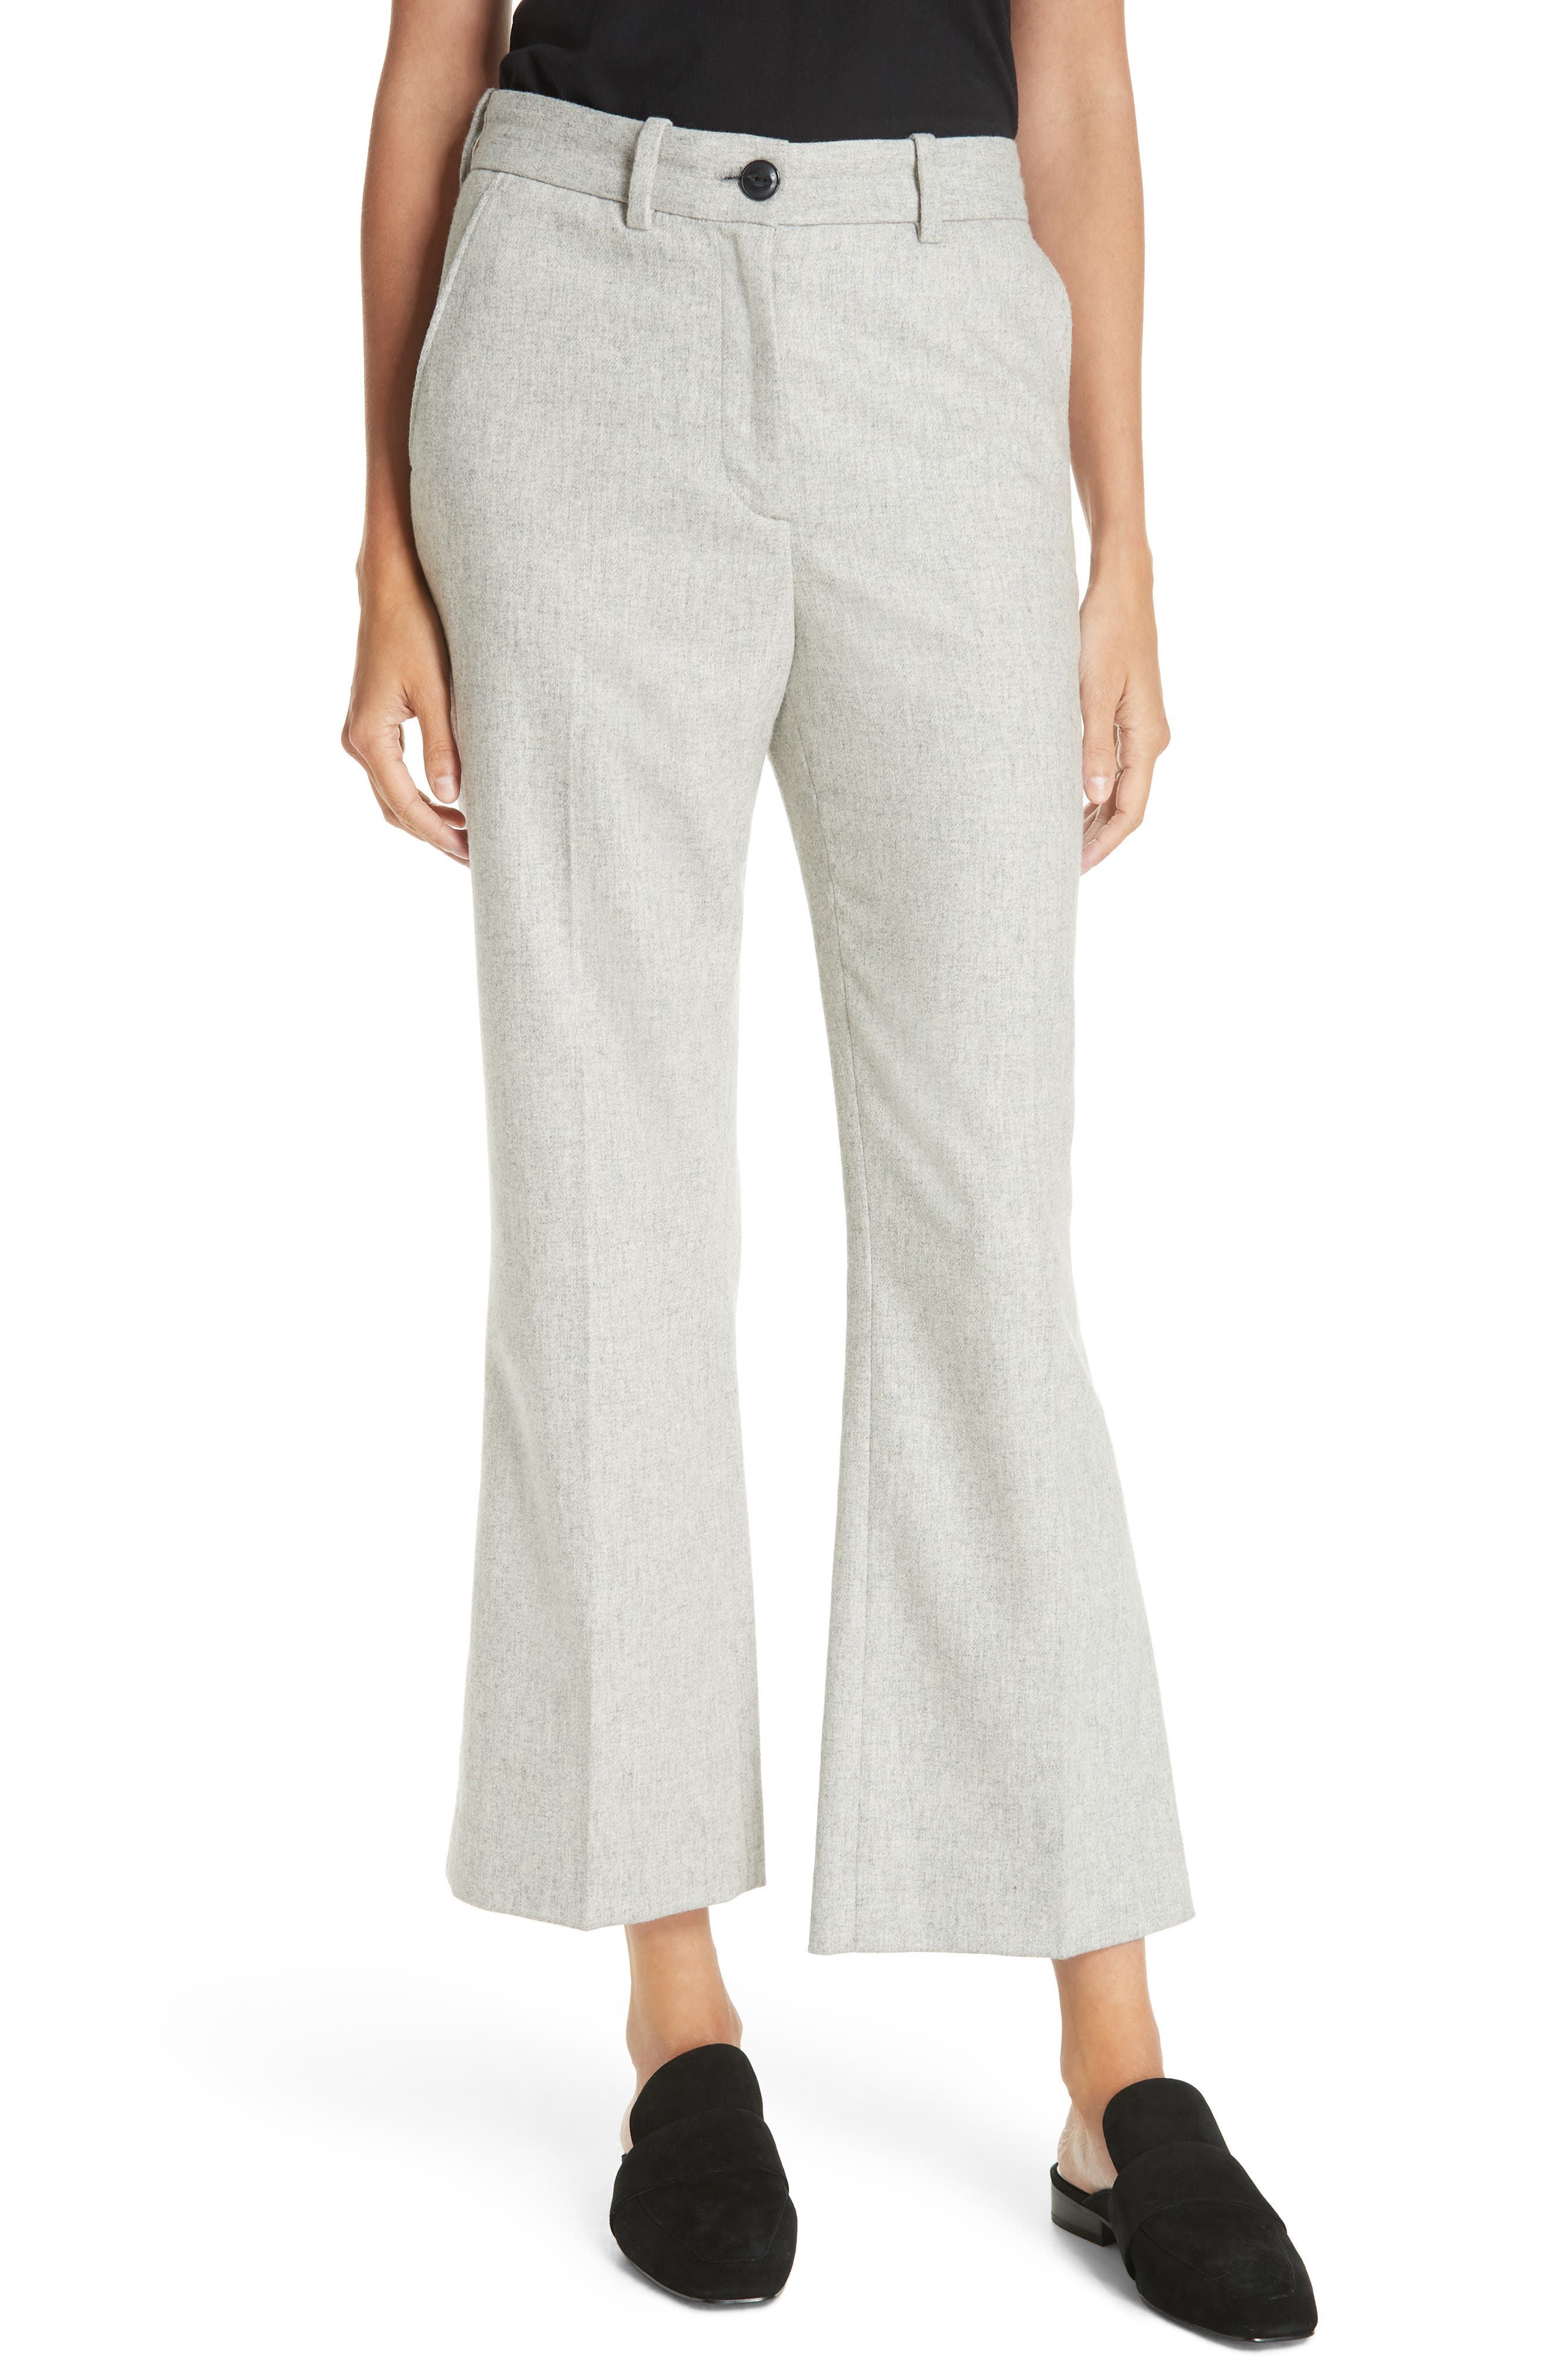 Libby Crop Flare Pants,                         Main,                         color, 020